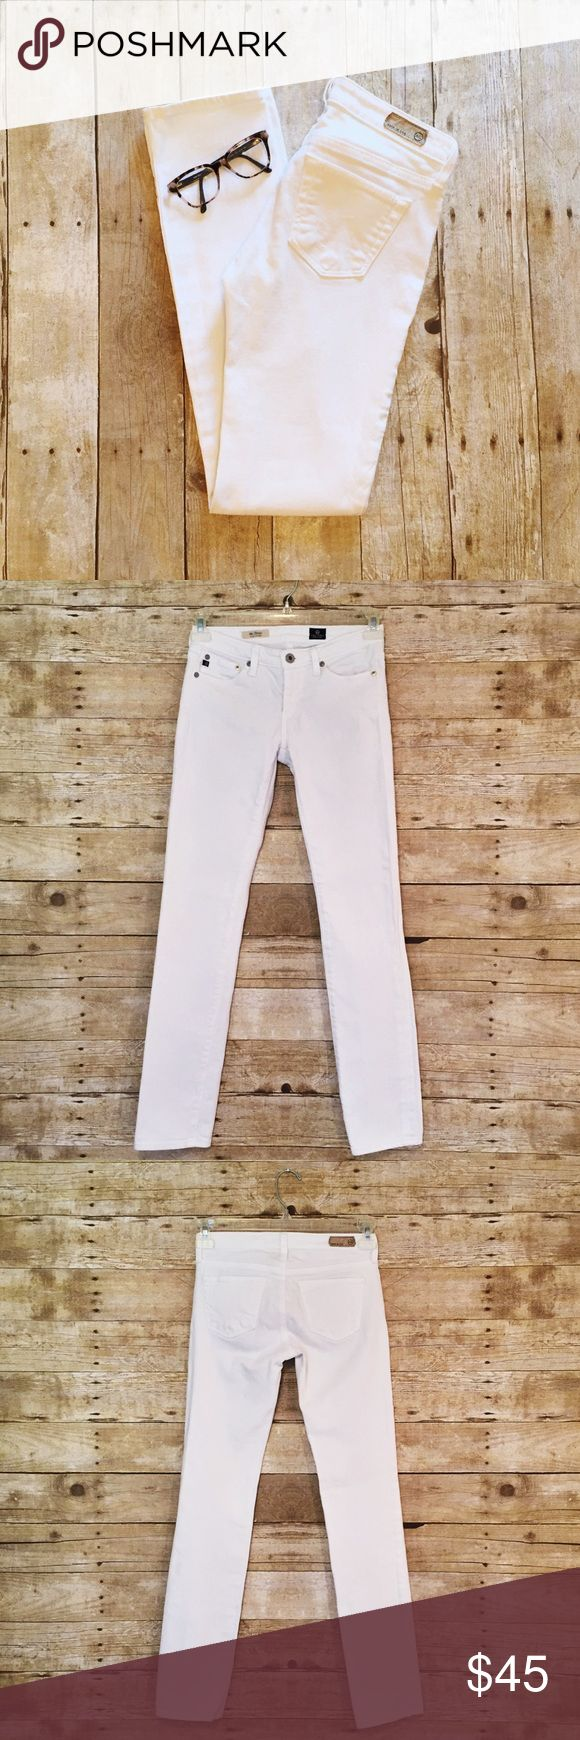 AG Adriano Goldschmied Stevie Slim Straight Jeans AG Adriano Goldschmied Stevie Slim Straight Jeans  - Size 25   - Regular / Standard length  - Slim straight leg  - Zip fly with button closure  - 5 pocket construction  - Cotton blend  - Bright white denim  - Nearly perfect condition  - Only imperfection is small discoloration on back of left leg (pictured); barely noticeable, but could be easily bleached Ag Adriano Goldschmied Jeans Straight Leg